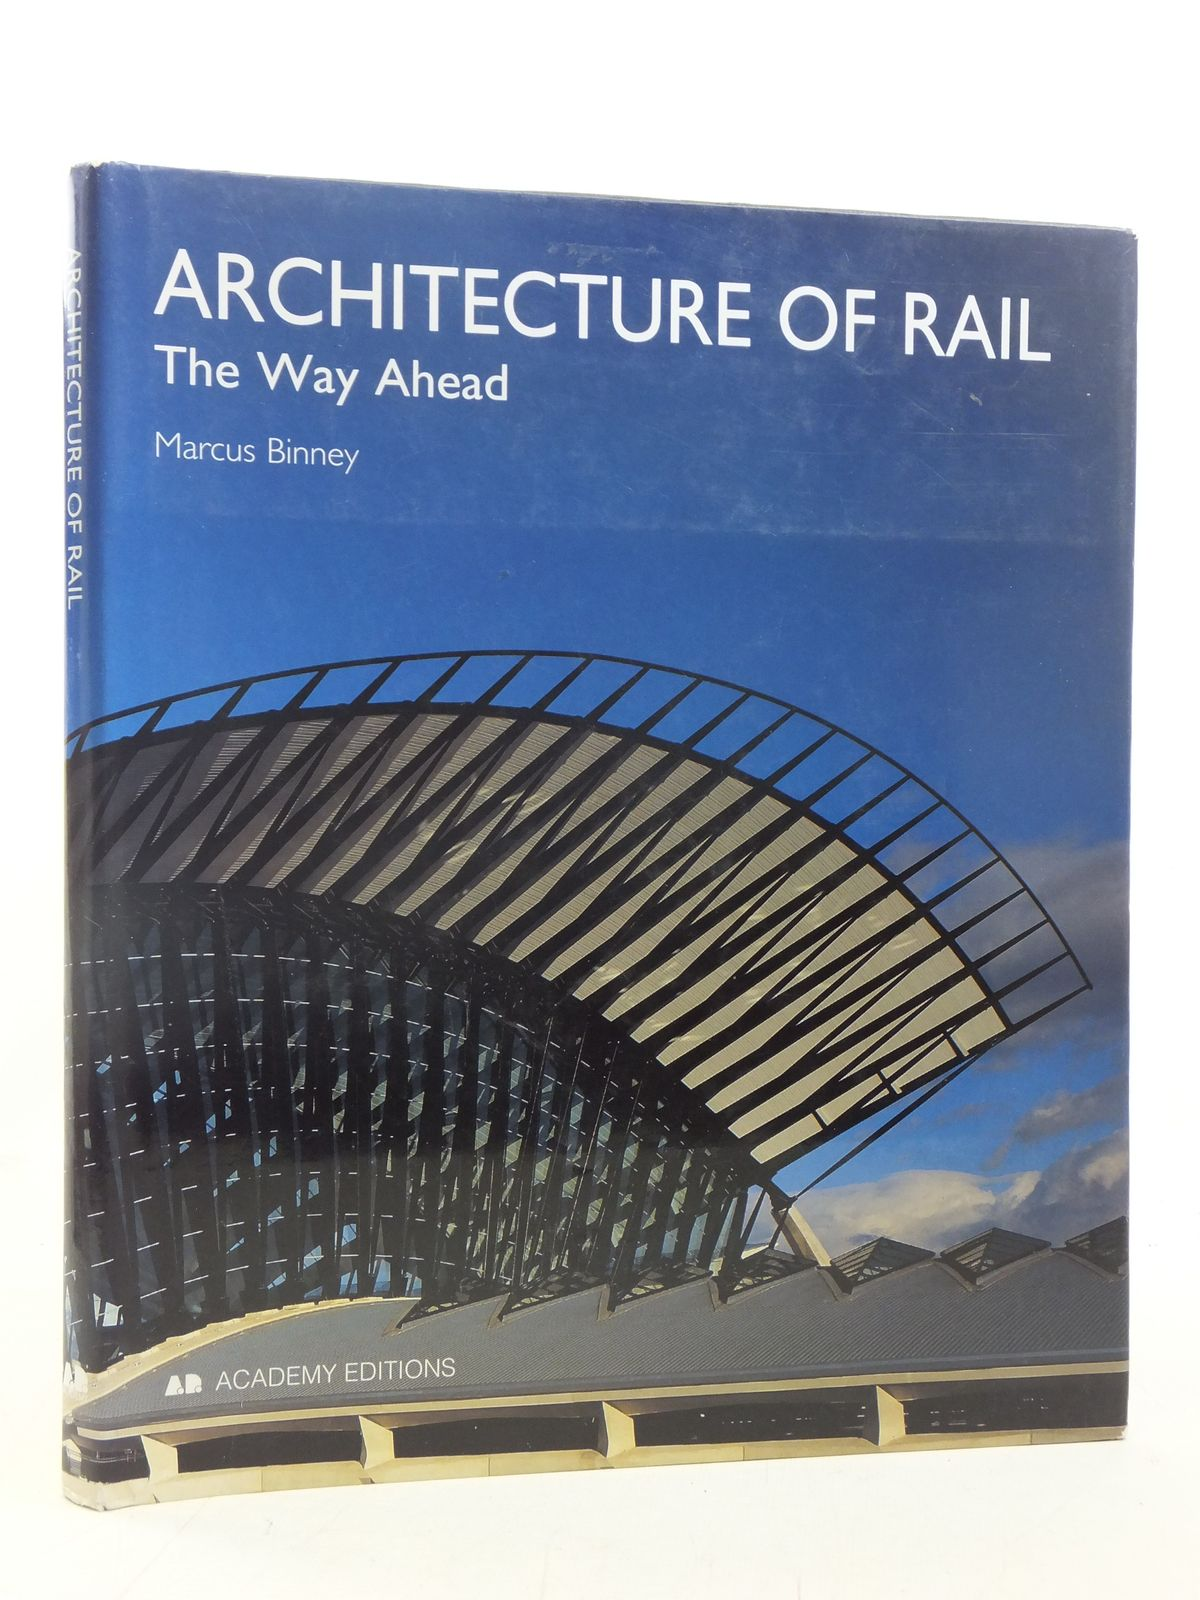 Photo of ARCHITECTURE OF RAIL THE WAY AHEAD written by Binney, Marcus published by Academy Editions (STOCK CODE: 1606727)  for sale by Stella & Rose's Books